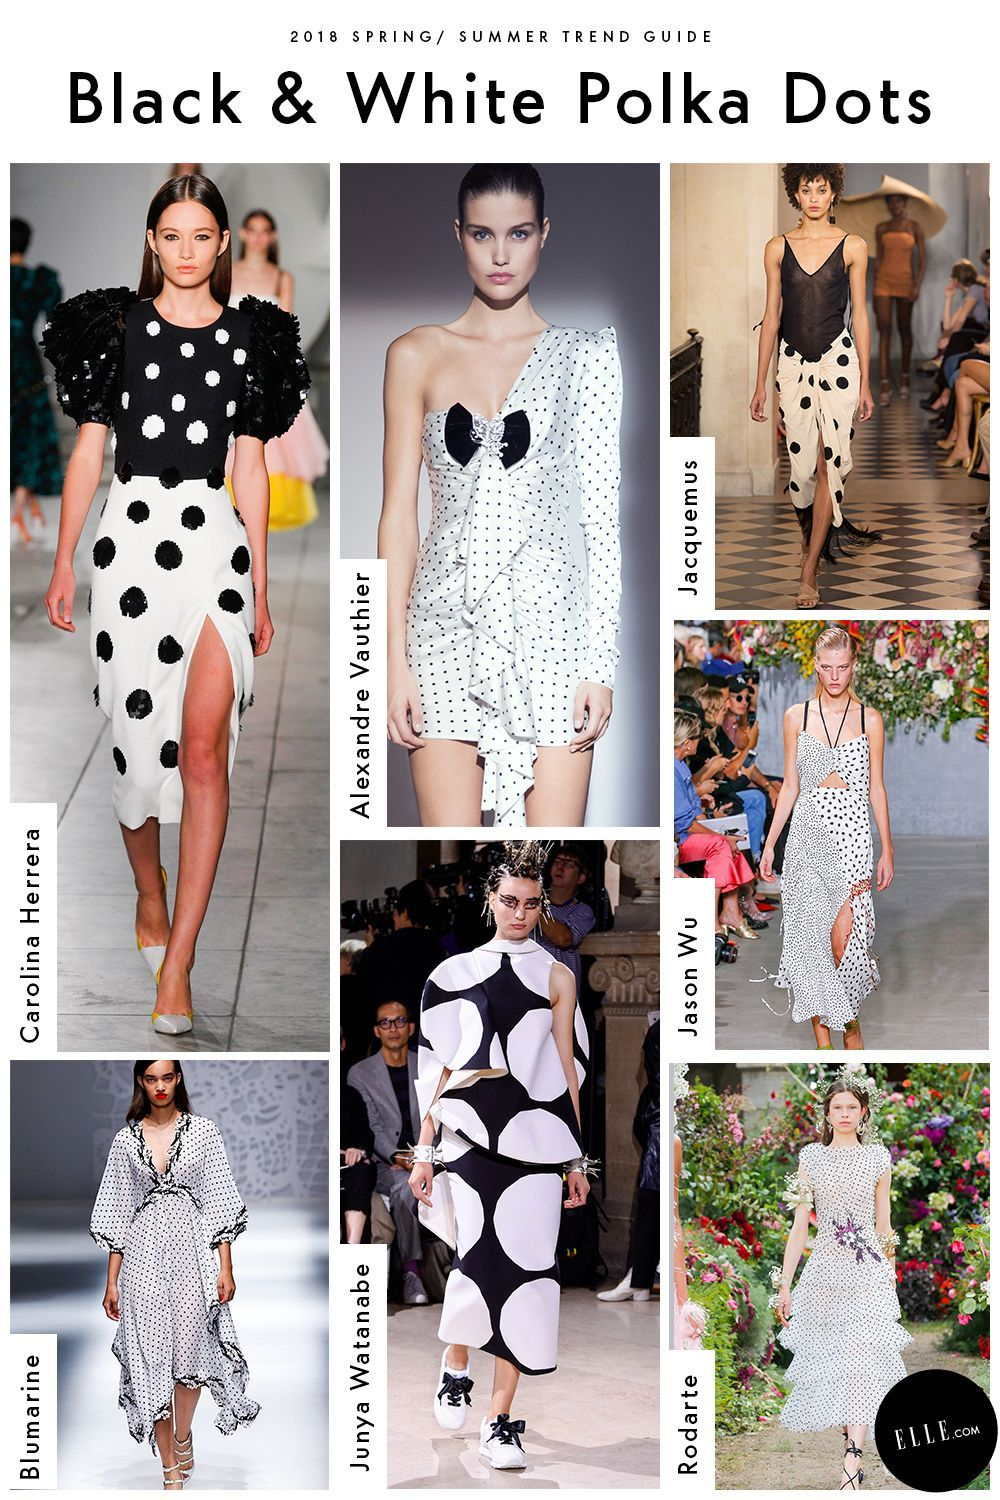 Fashion week Cassidy katie top 5 spring fashion trends for girls